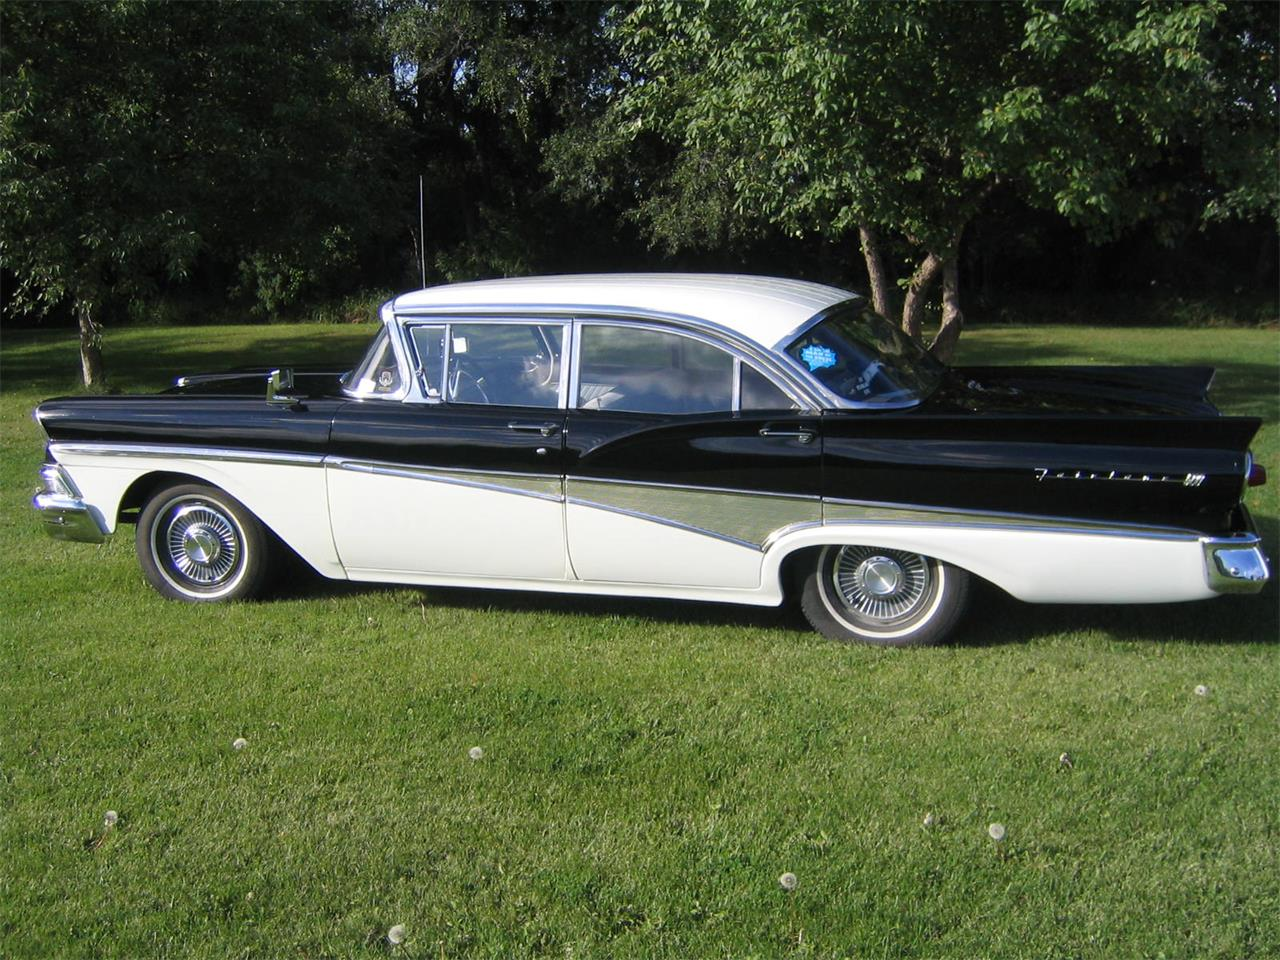 Large picture of 58 fairlane 500 l7yb